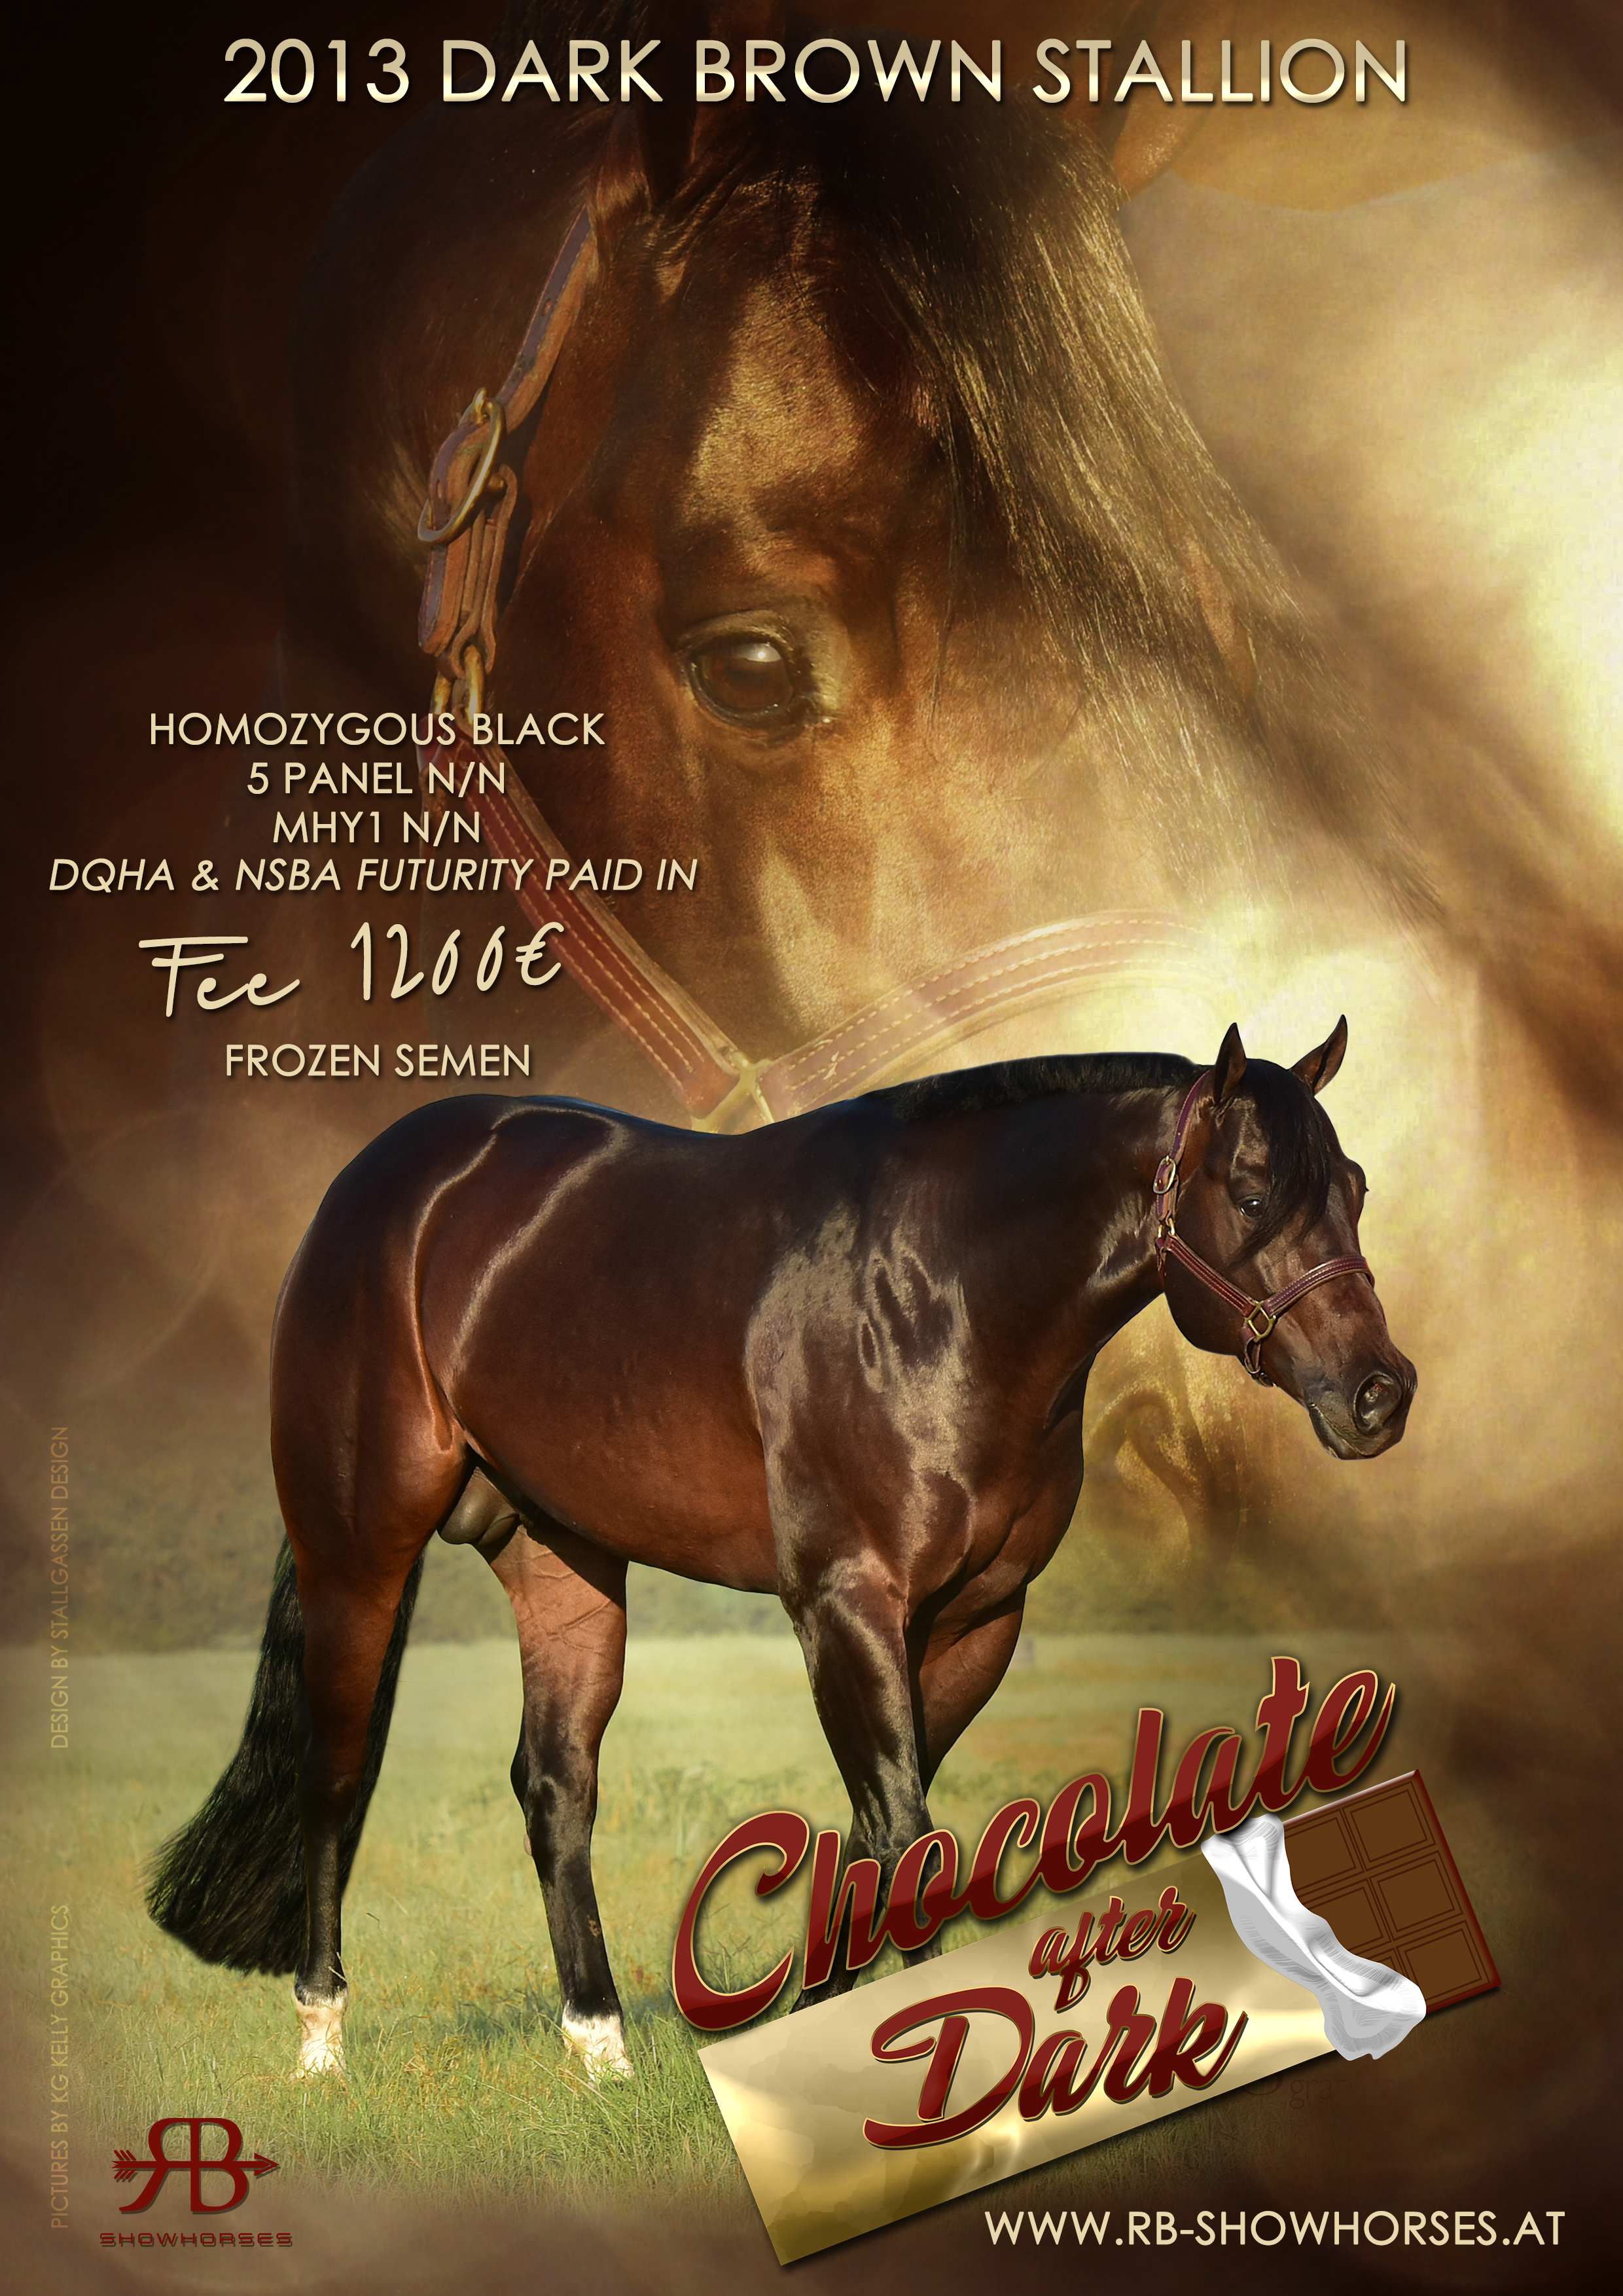 Stallion AD Chocolate after Dark 2